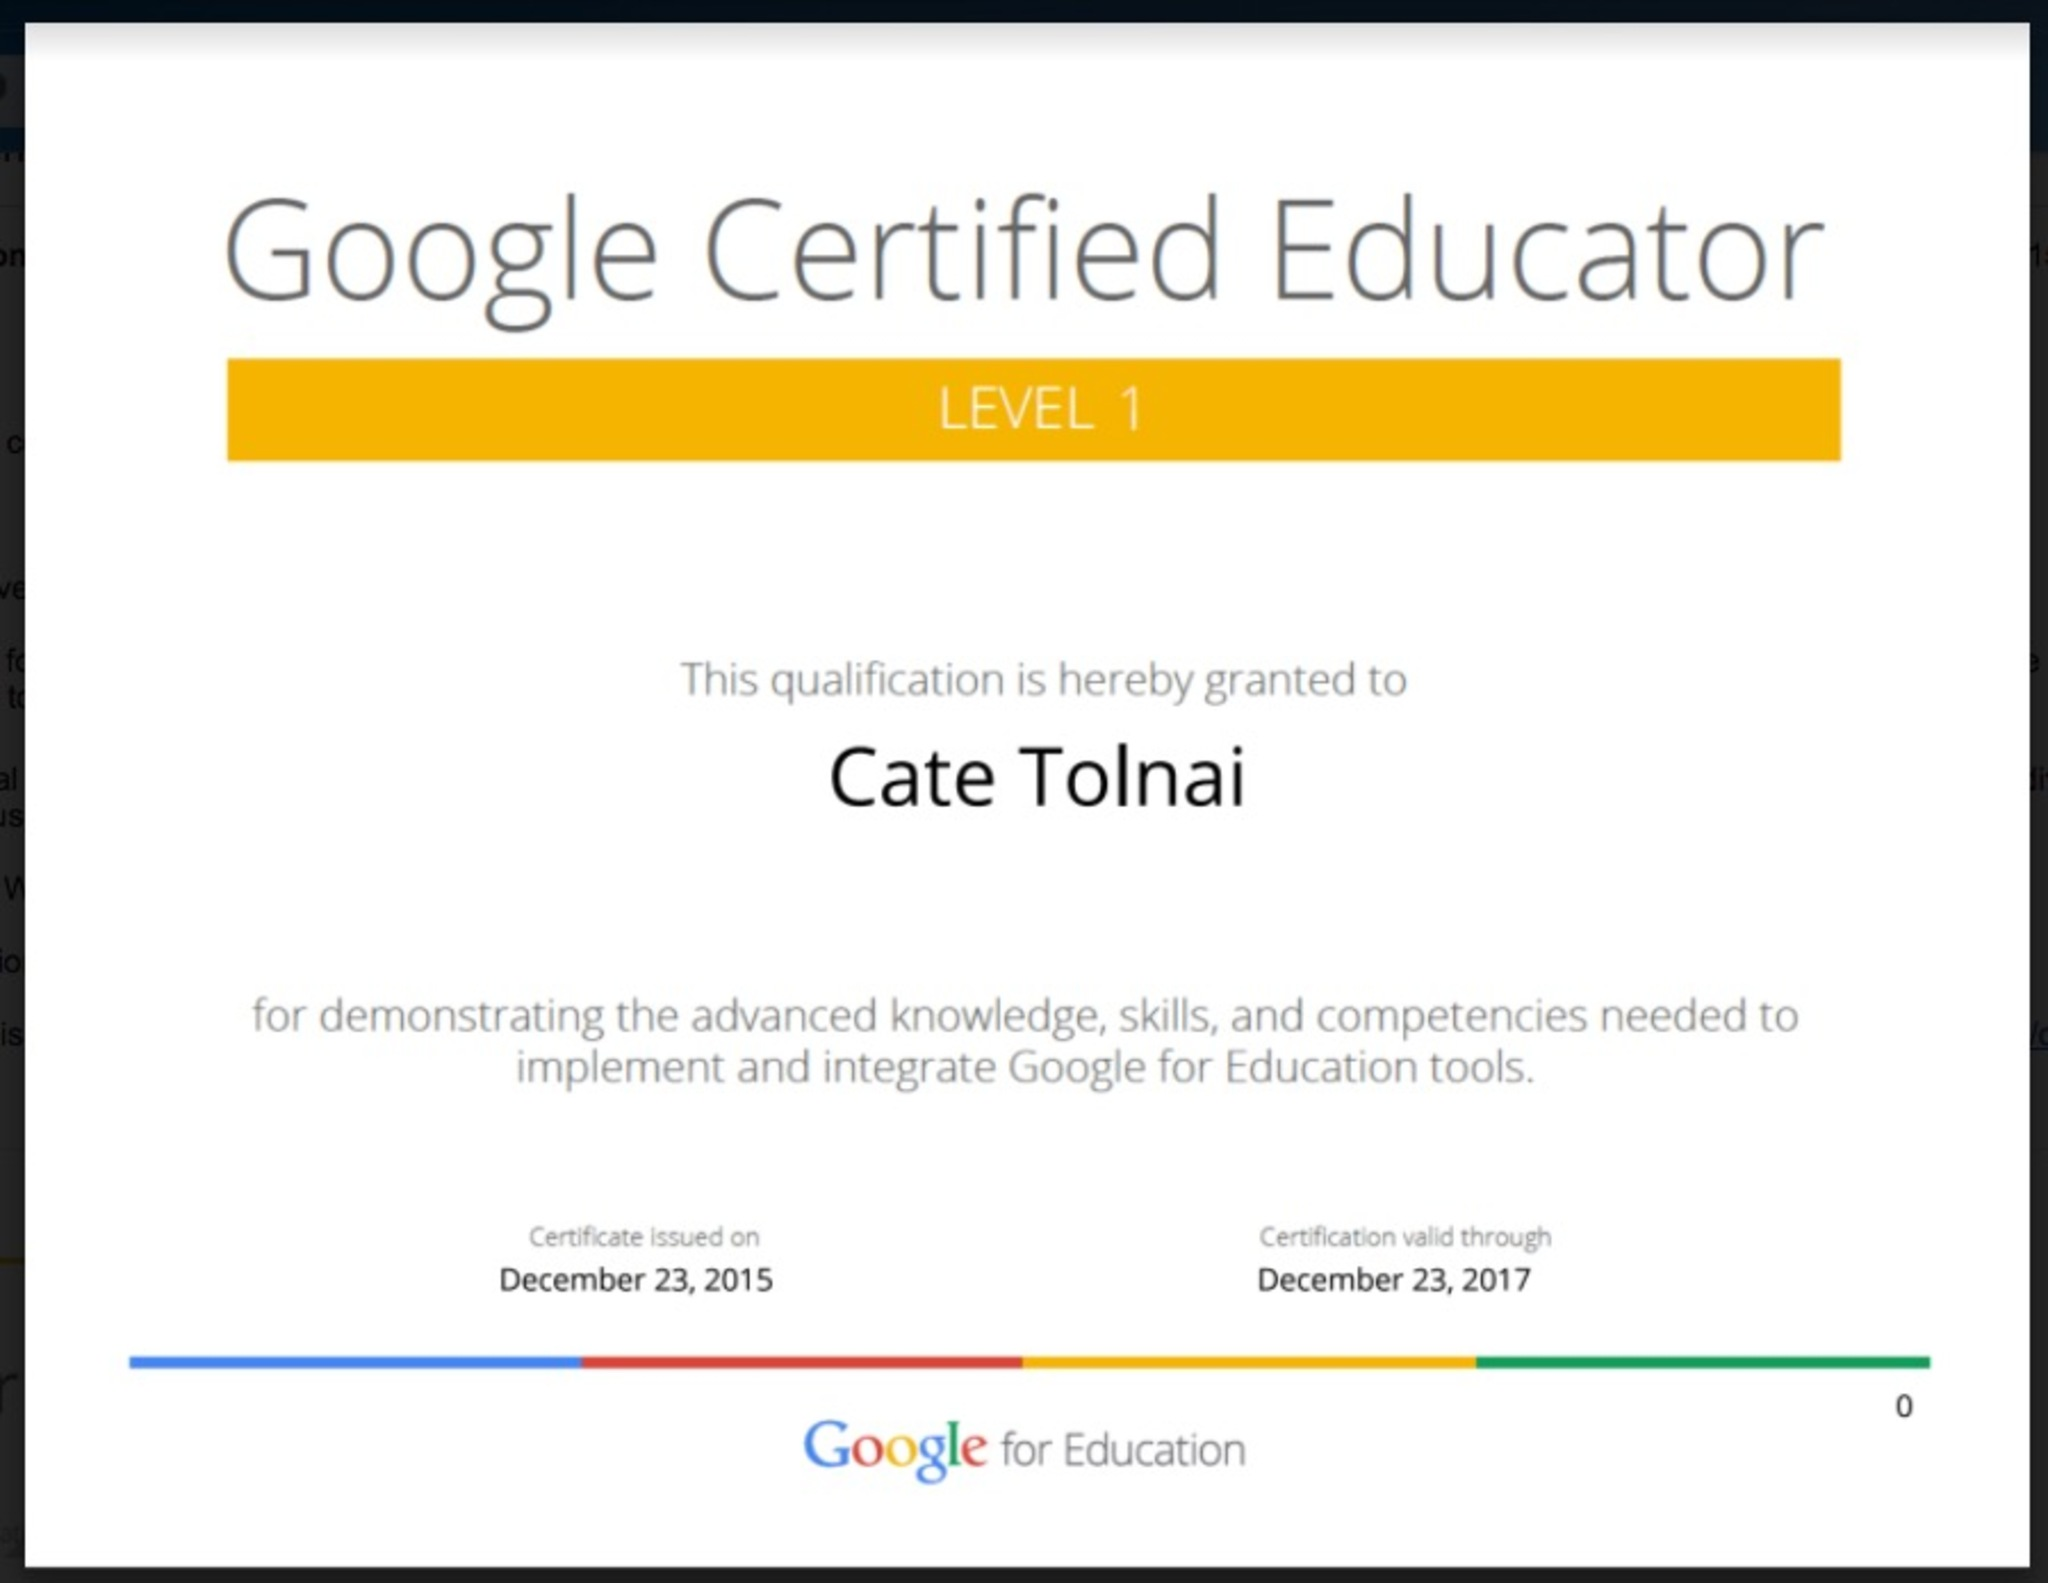 Cate Tolnai Google Certified Educator Level 1 Badge List